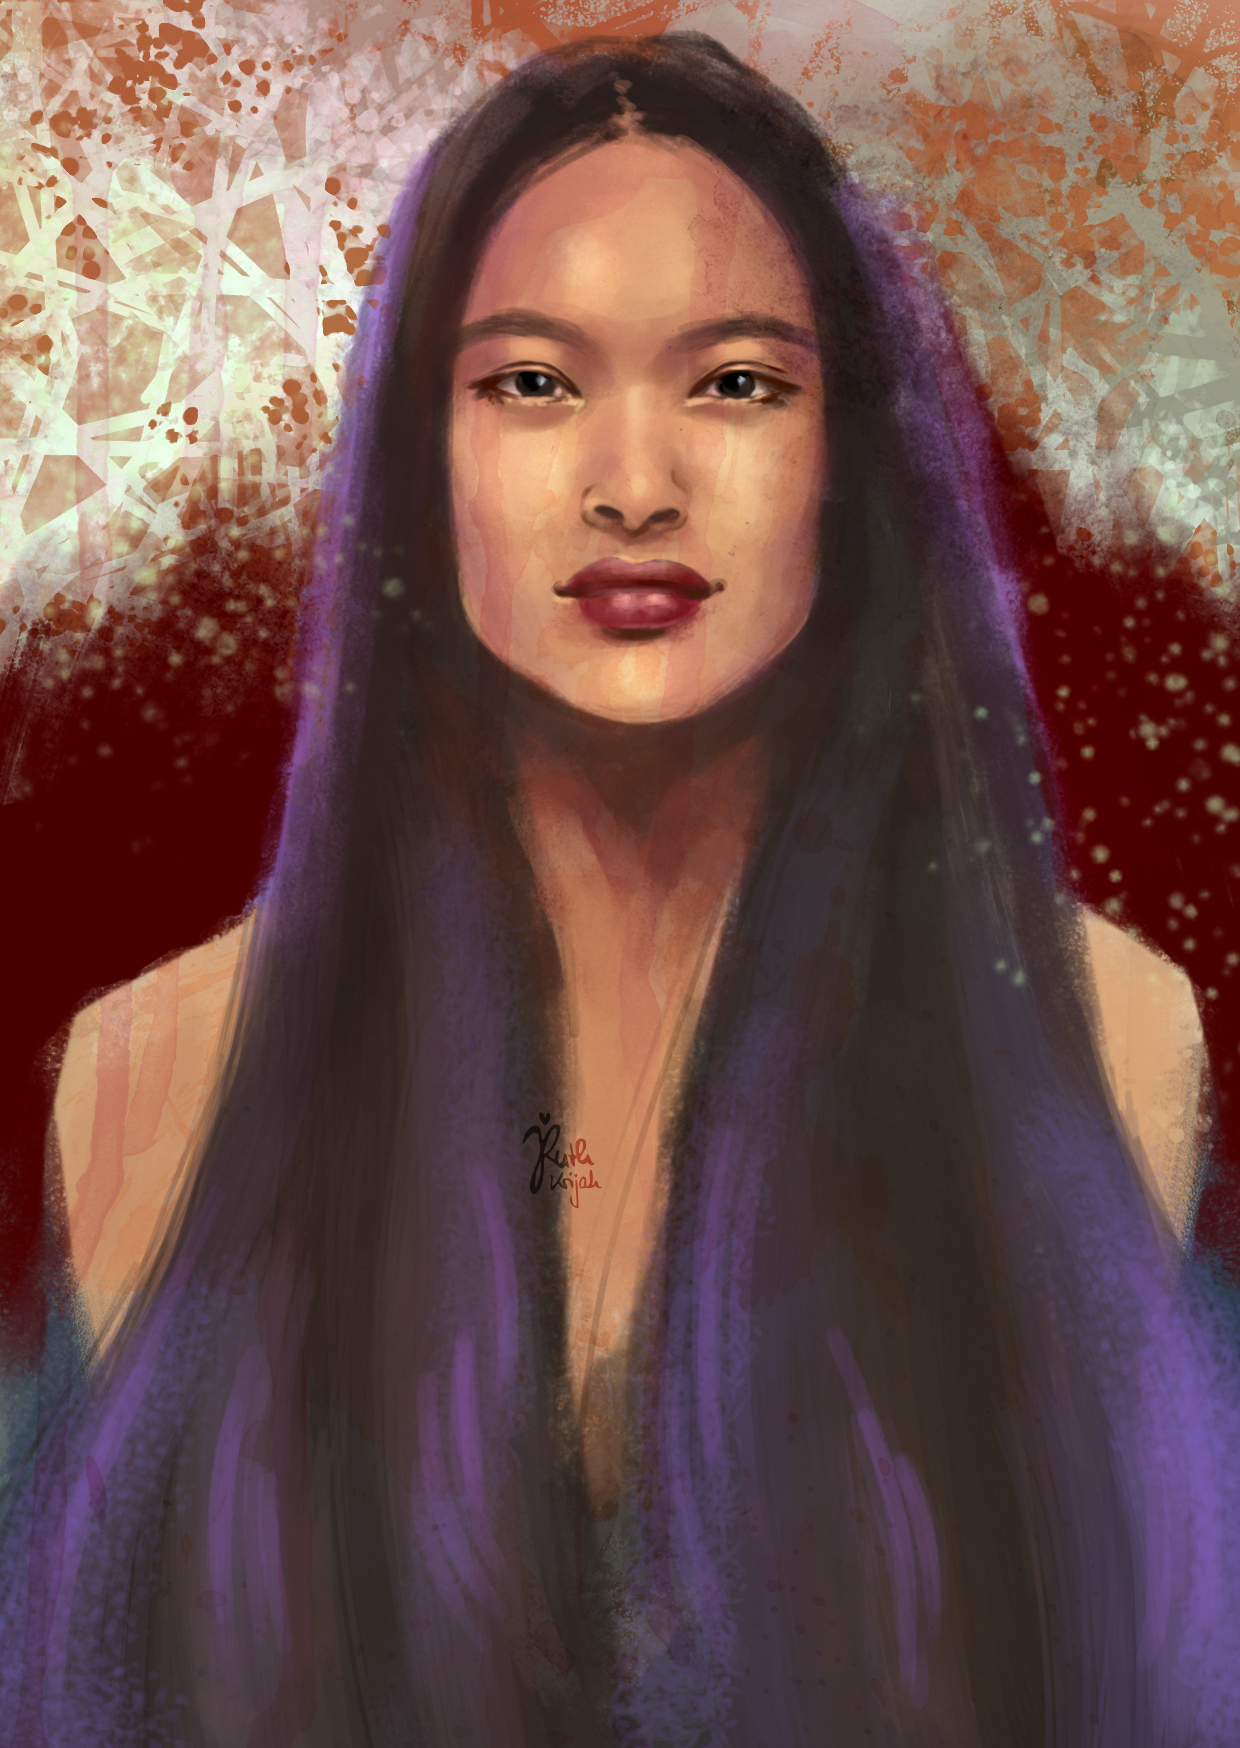 Digital Portrait of Asian Woman with long black hair. Inner Woman Portrait. By Artist Ruth Krijah